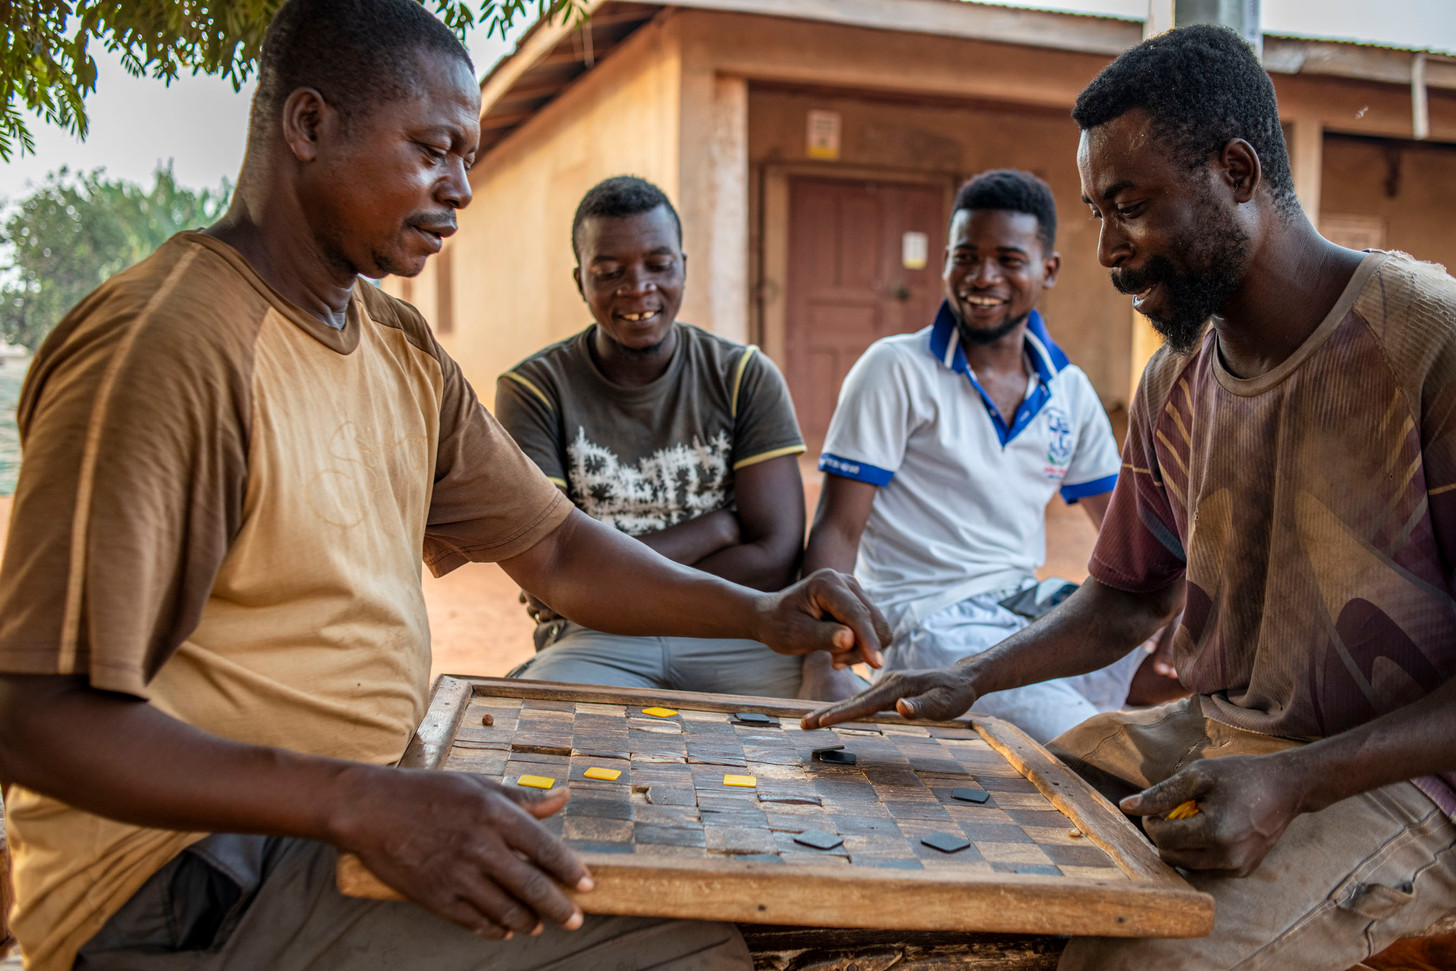 Playing checkers in the evening in Fiema, Ghana 2020